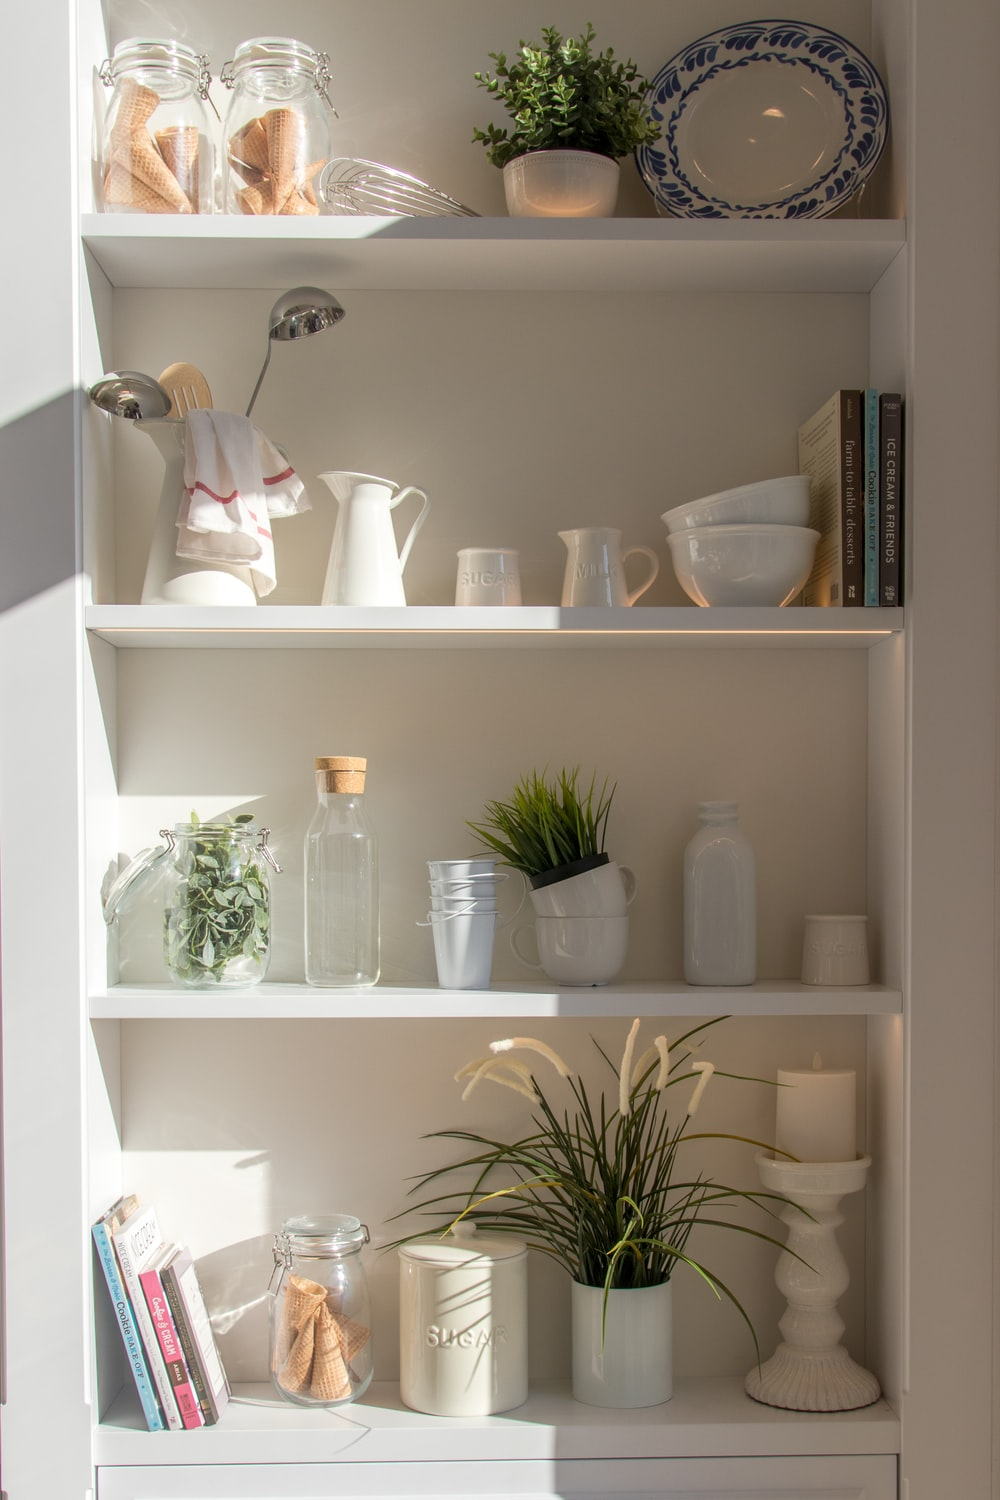 bowls and bottles in white wooden 4-layer shelf